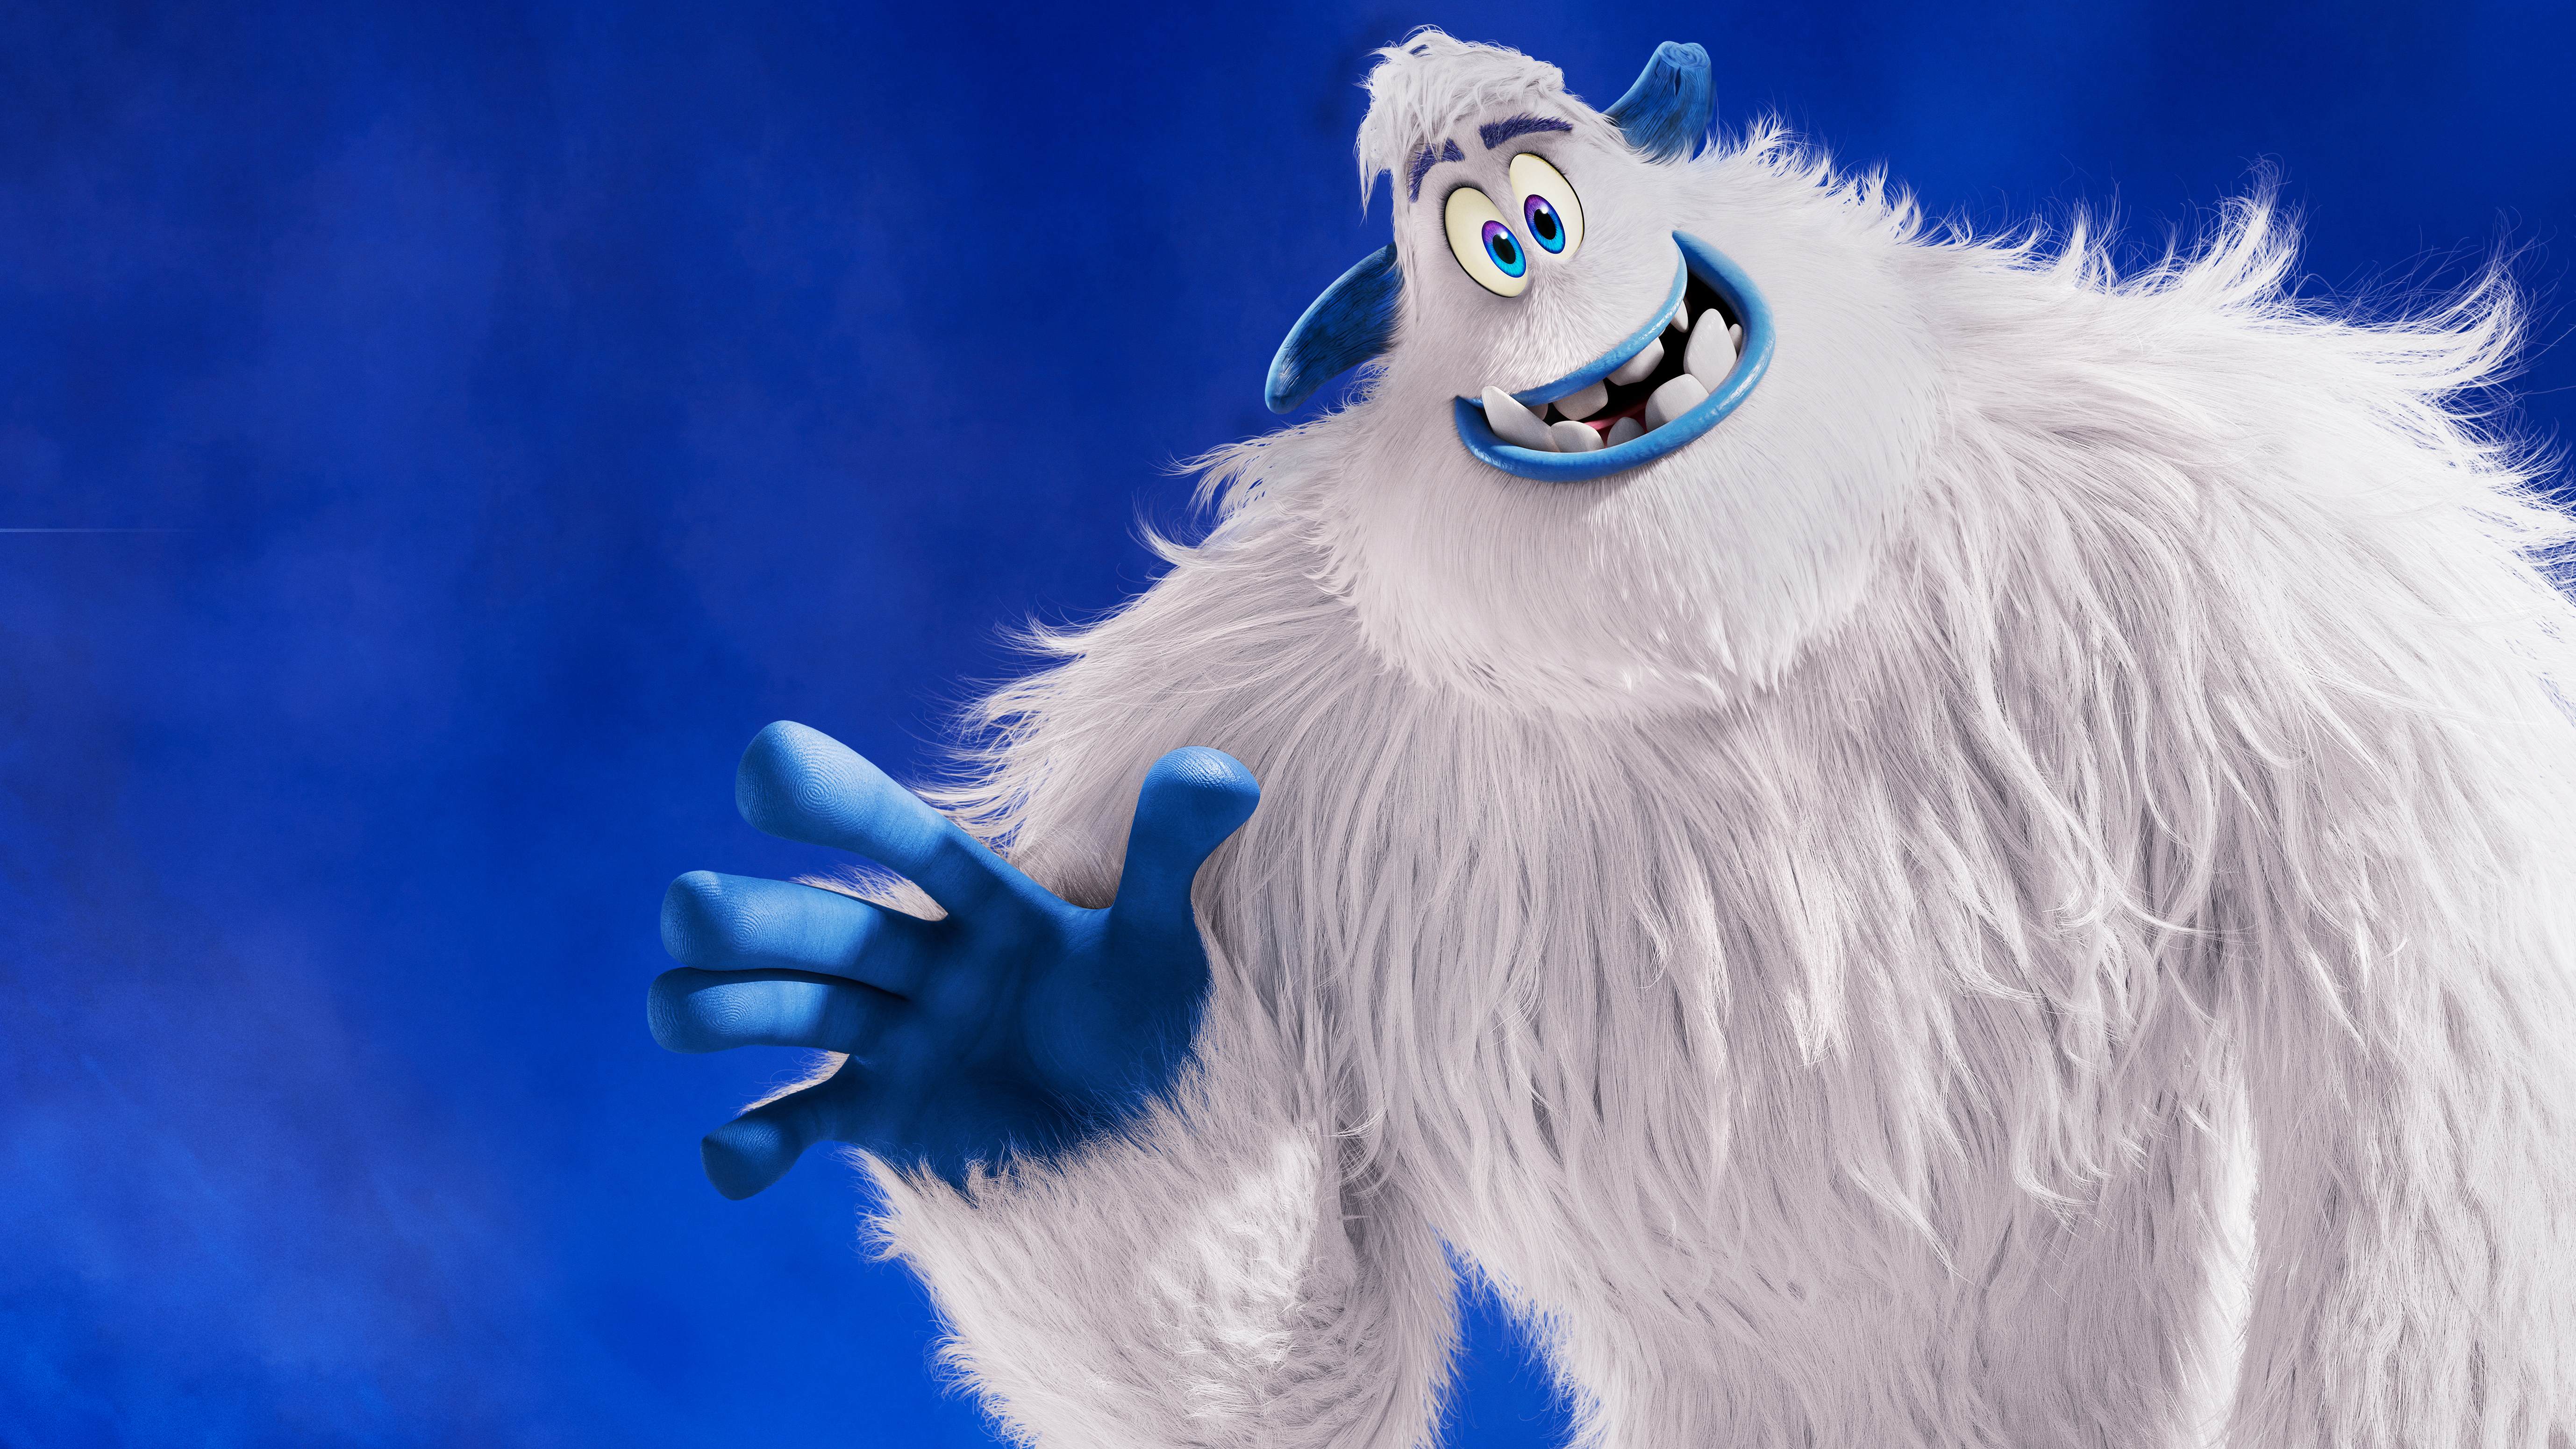 smallfoot 1589578997 - Smallfoot - Smallfoot movie wallpapers 4k, Smallfoot 4k wallpapers